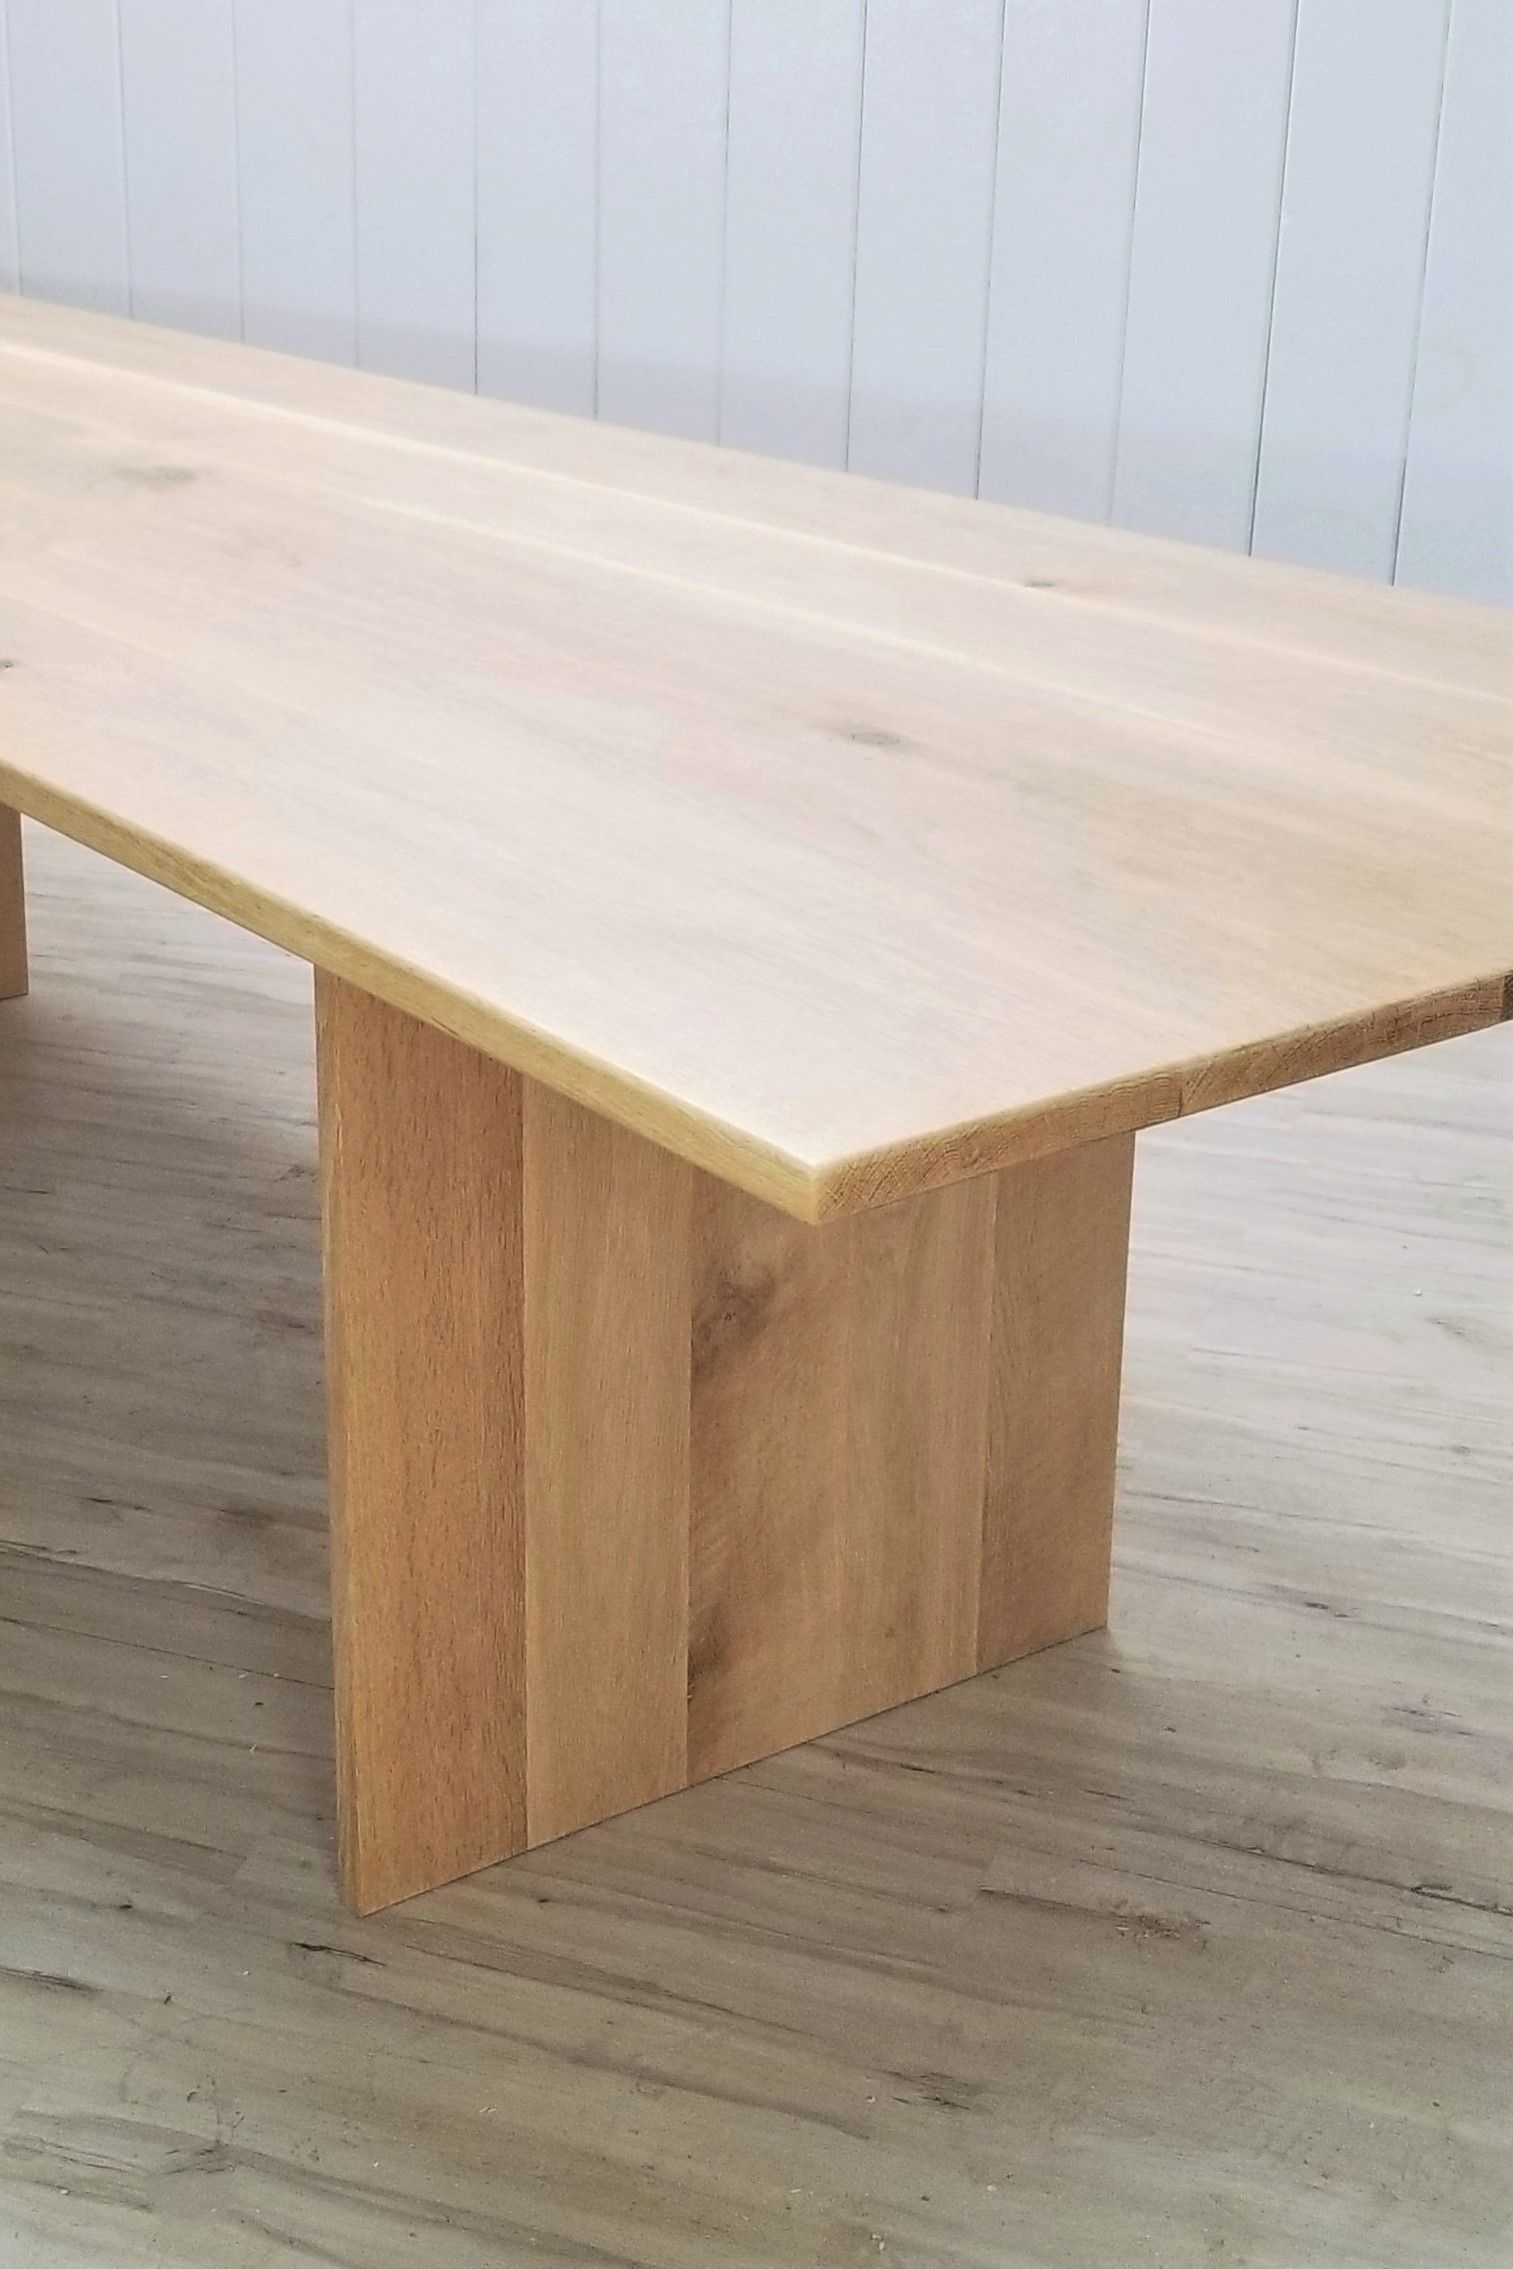 Custom Solid White Oak Dining Table Seamless Planks Natural Etsy In 2020 Oak Dining Table White Oak Dining Table White Oak Table